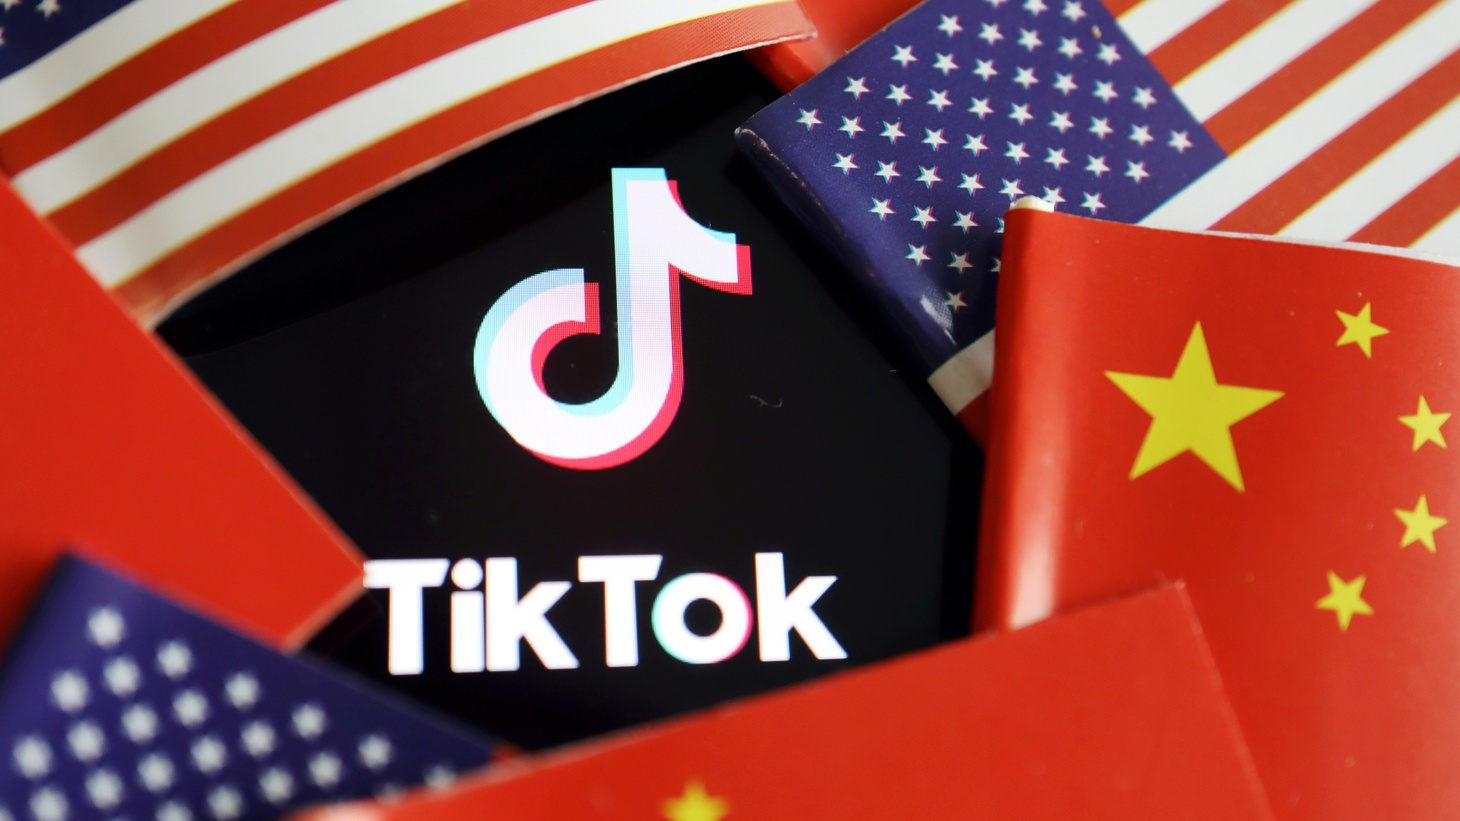 Chinese and U.S. flags are seen near a TikTok logo in this illustration picture taken July 16, 2020.